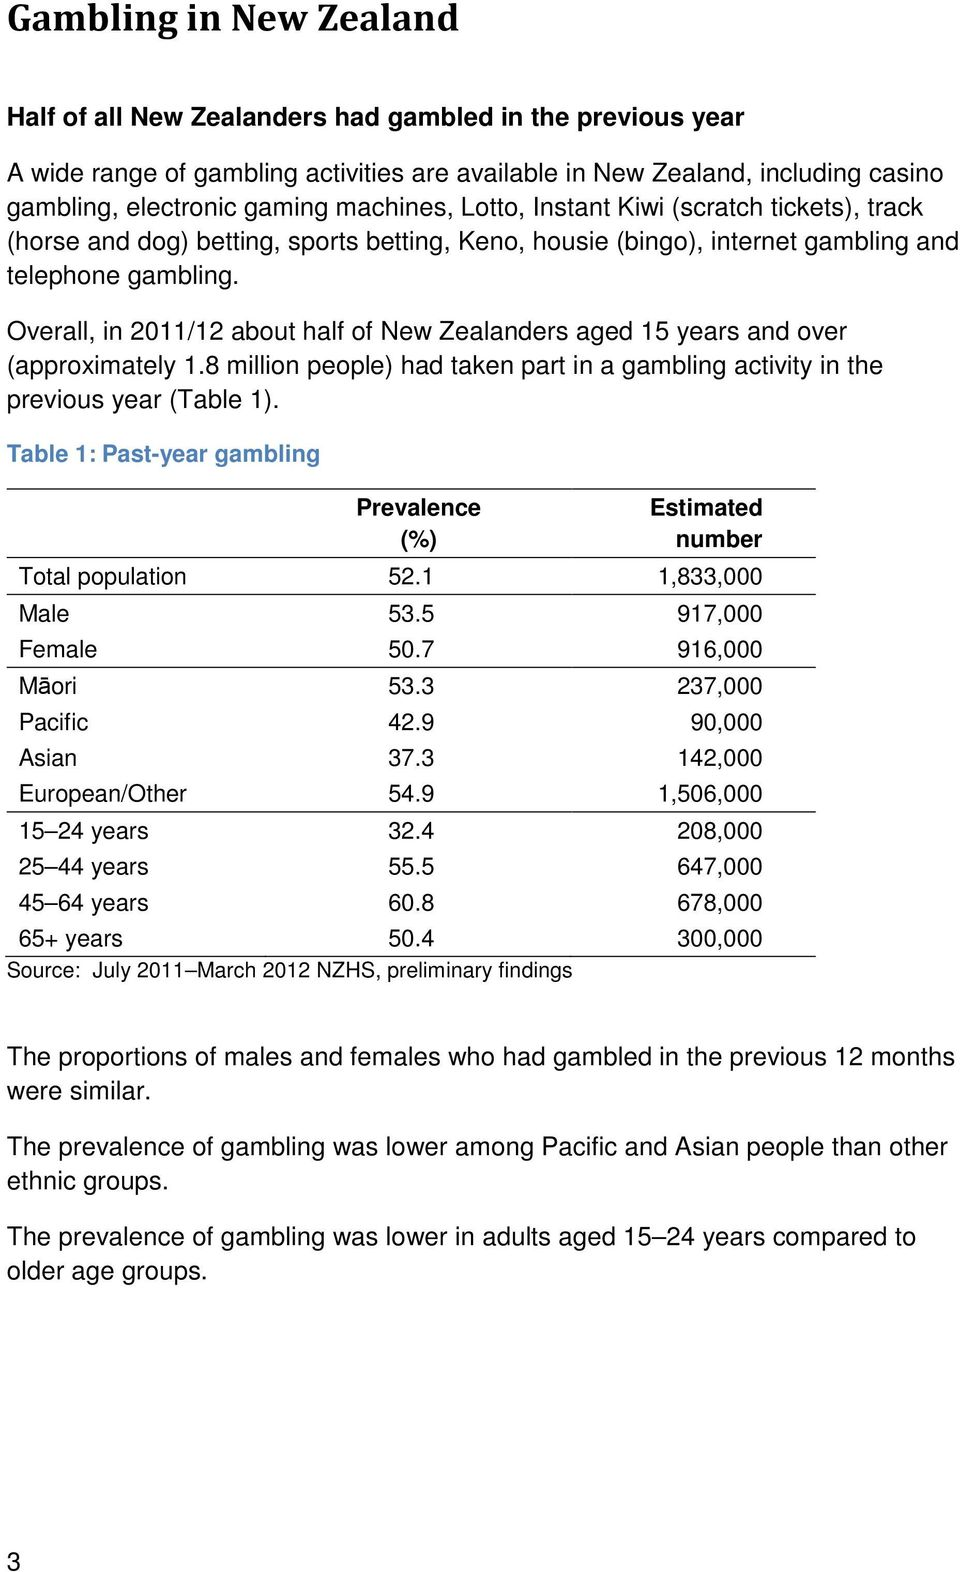 Overall, in 2011/12 about half of New Zealanders aged 15 years and over (approximately 1.8 million people) had taken part in a gambling activity in the previous year (Table 1).